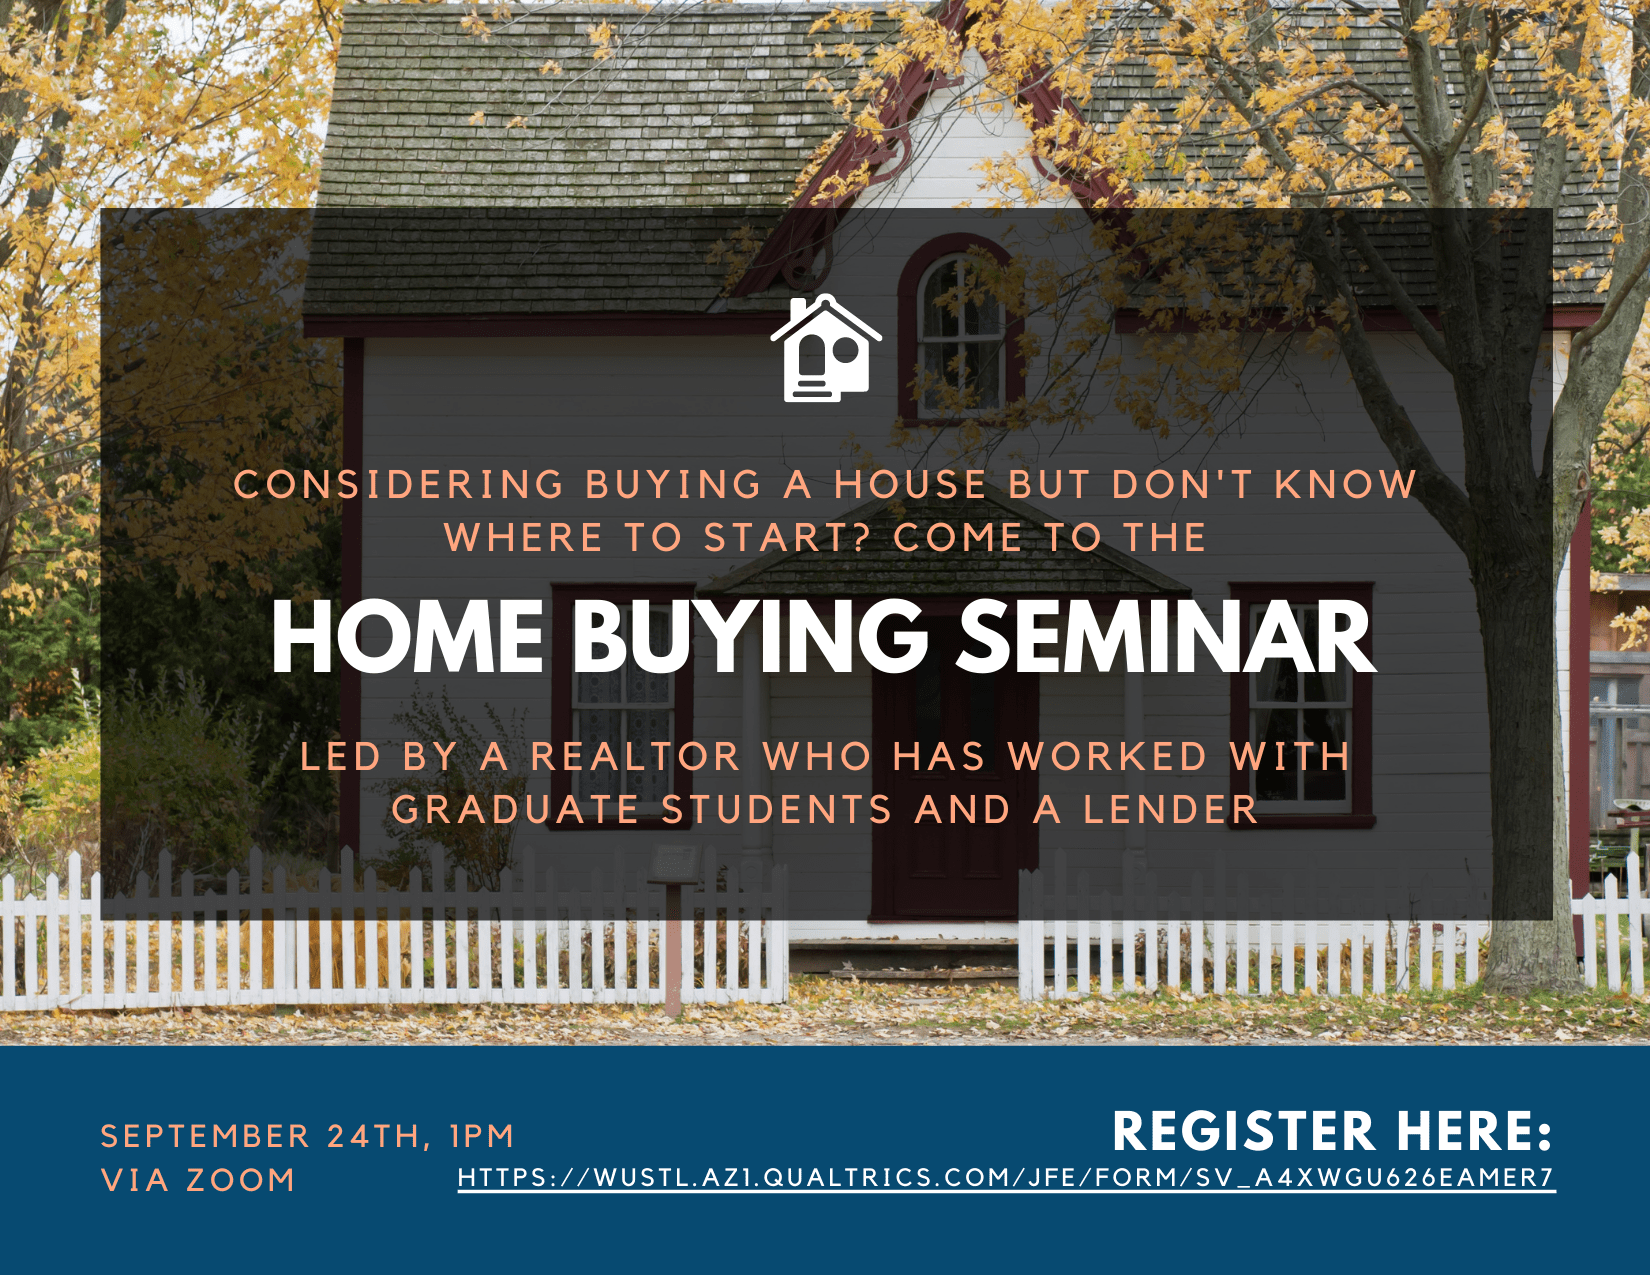 Home Buying Seminar Recap